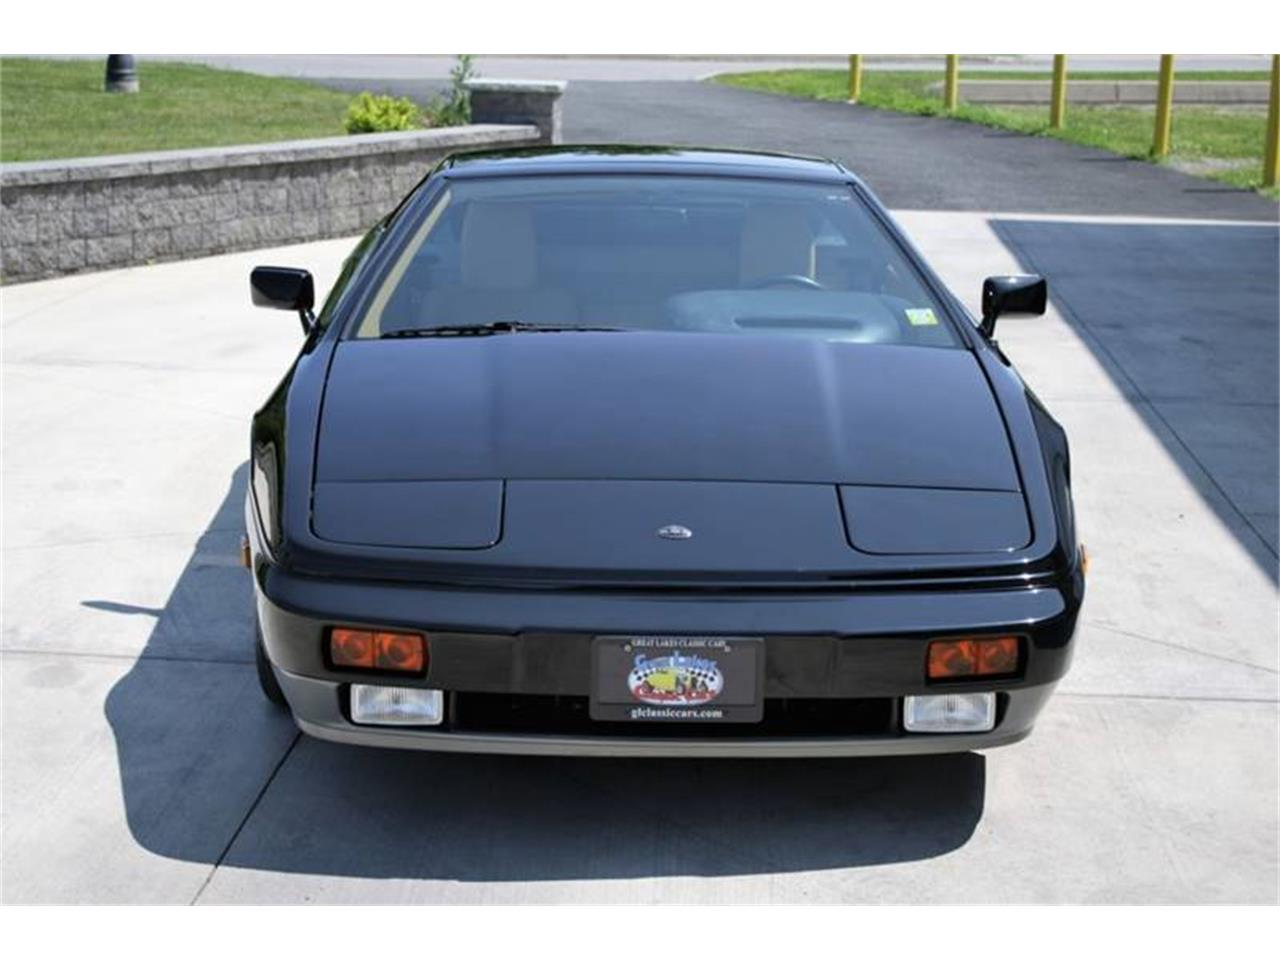 Large Picture of 1988 Esprit located in Hilton New York Offered by Great Lakes Classic Cars - QE3Z